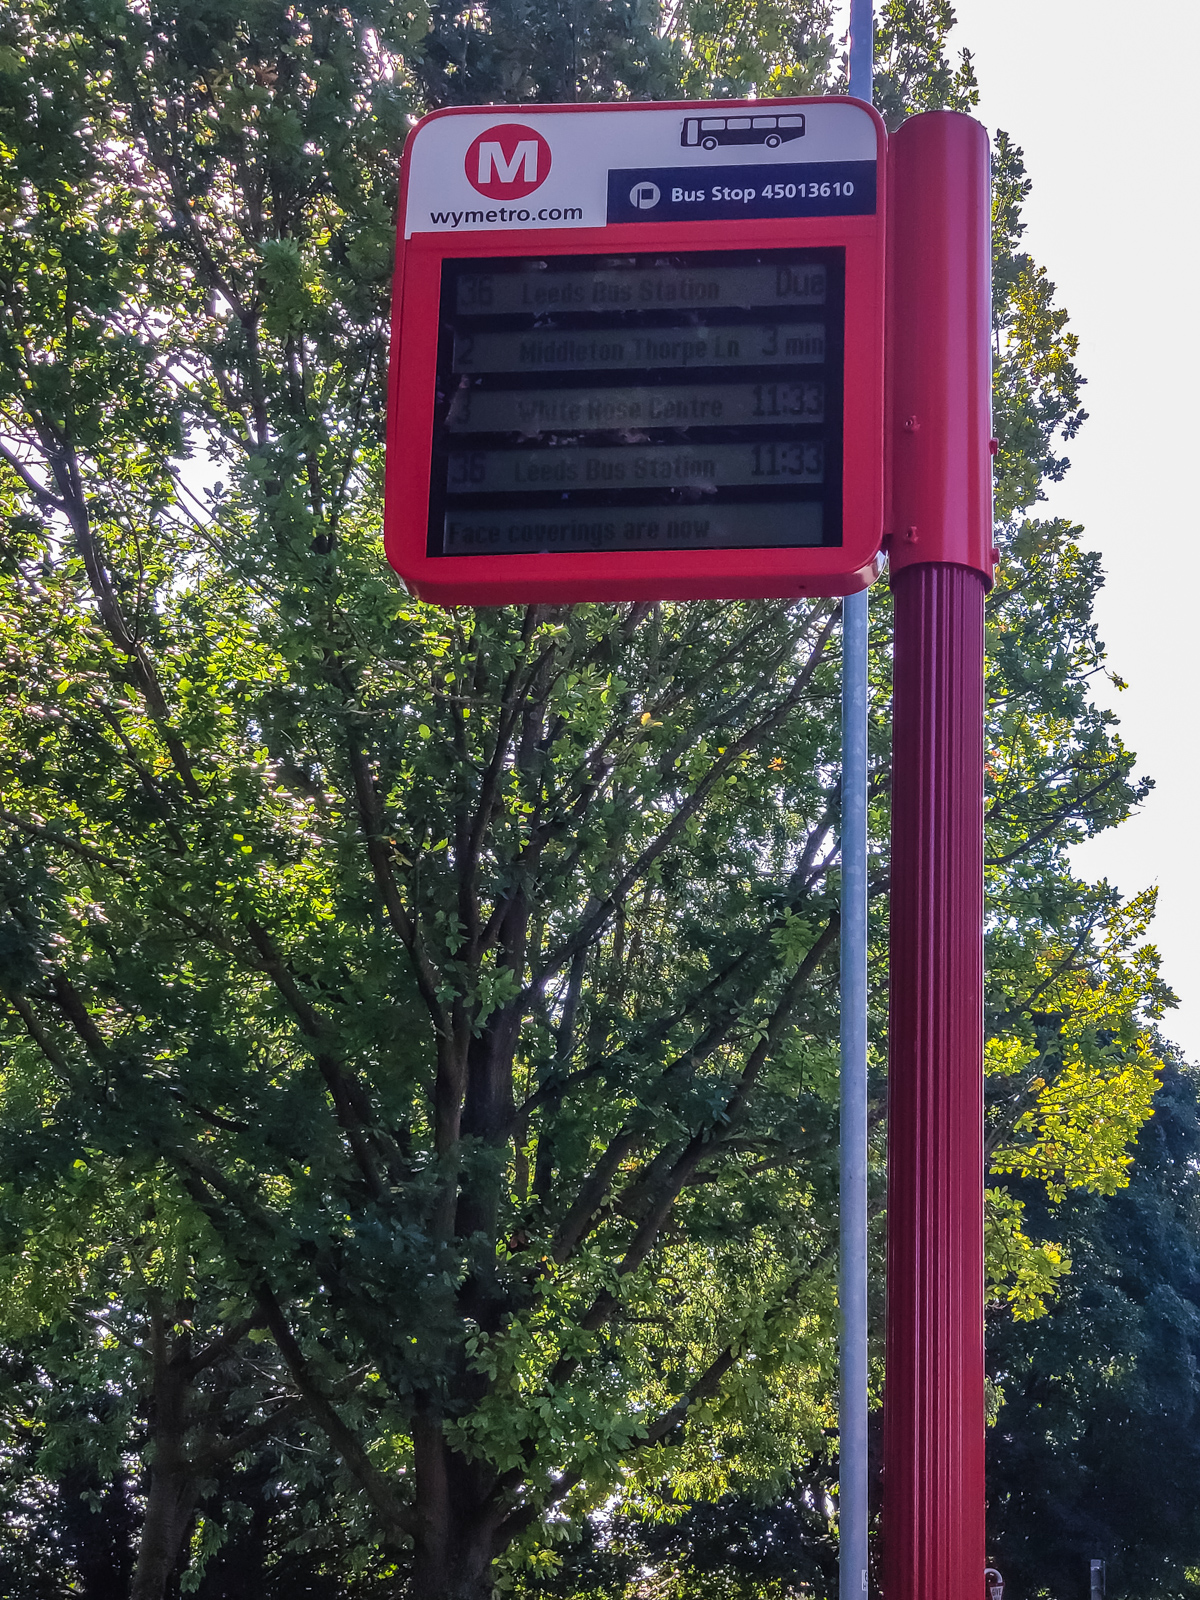 WY METRO INTELLIGENT BUS STOP  POOR DISPLY_.jpg